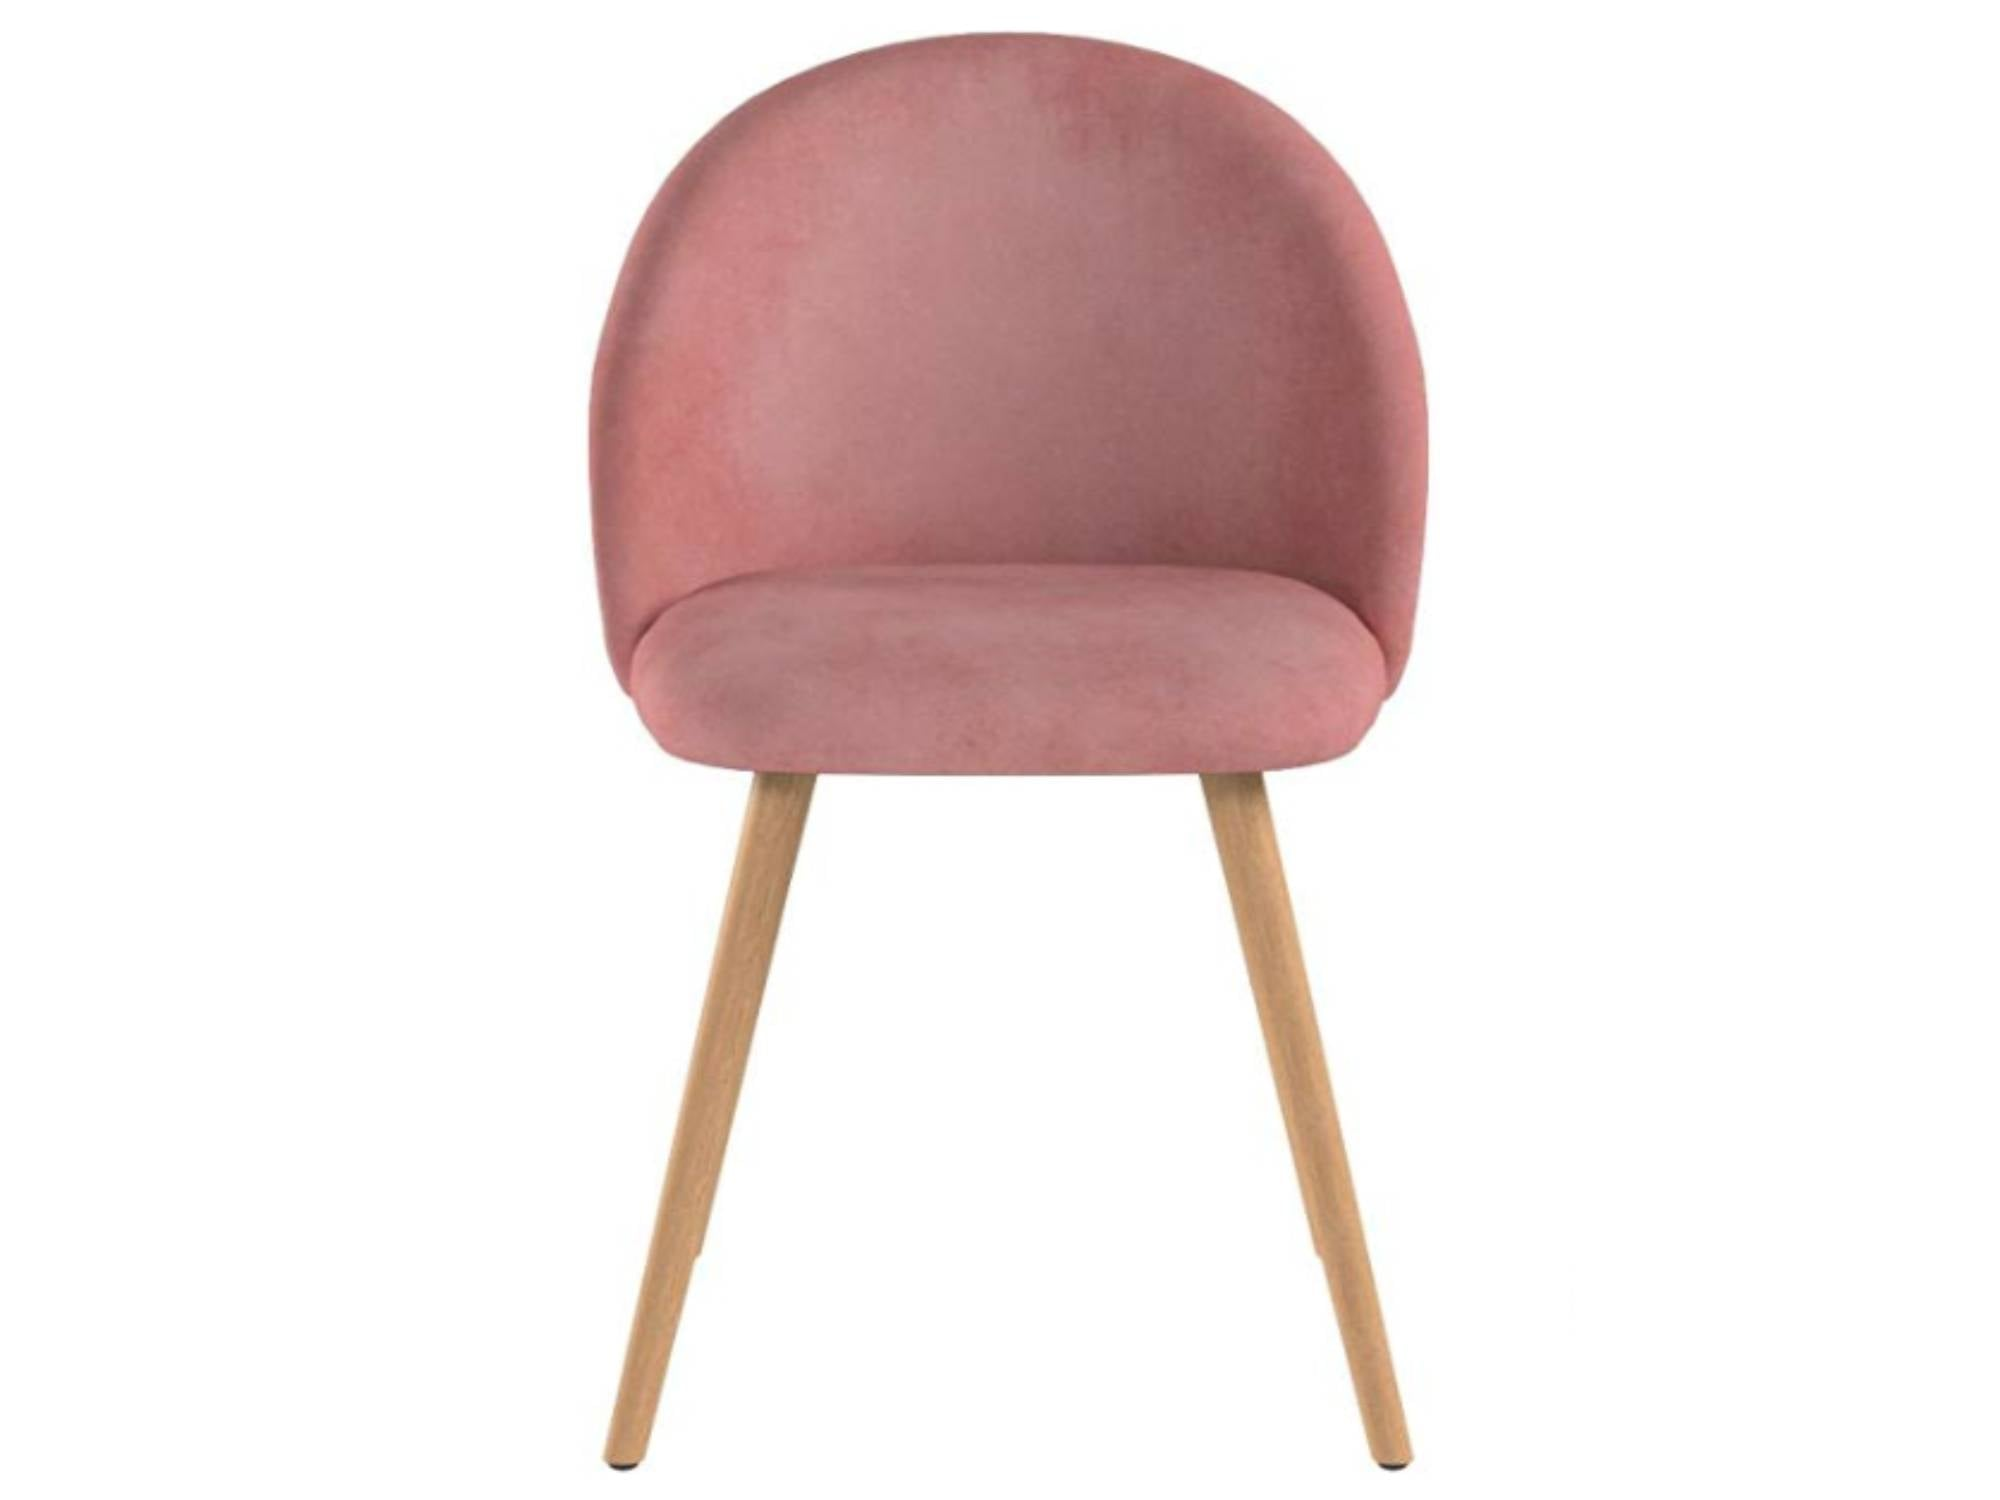 AVALON VELVET CHAIR - DUSTY ROSE